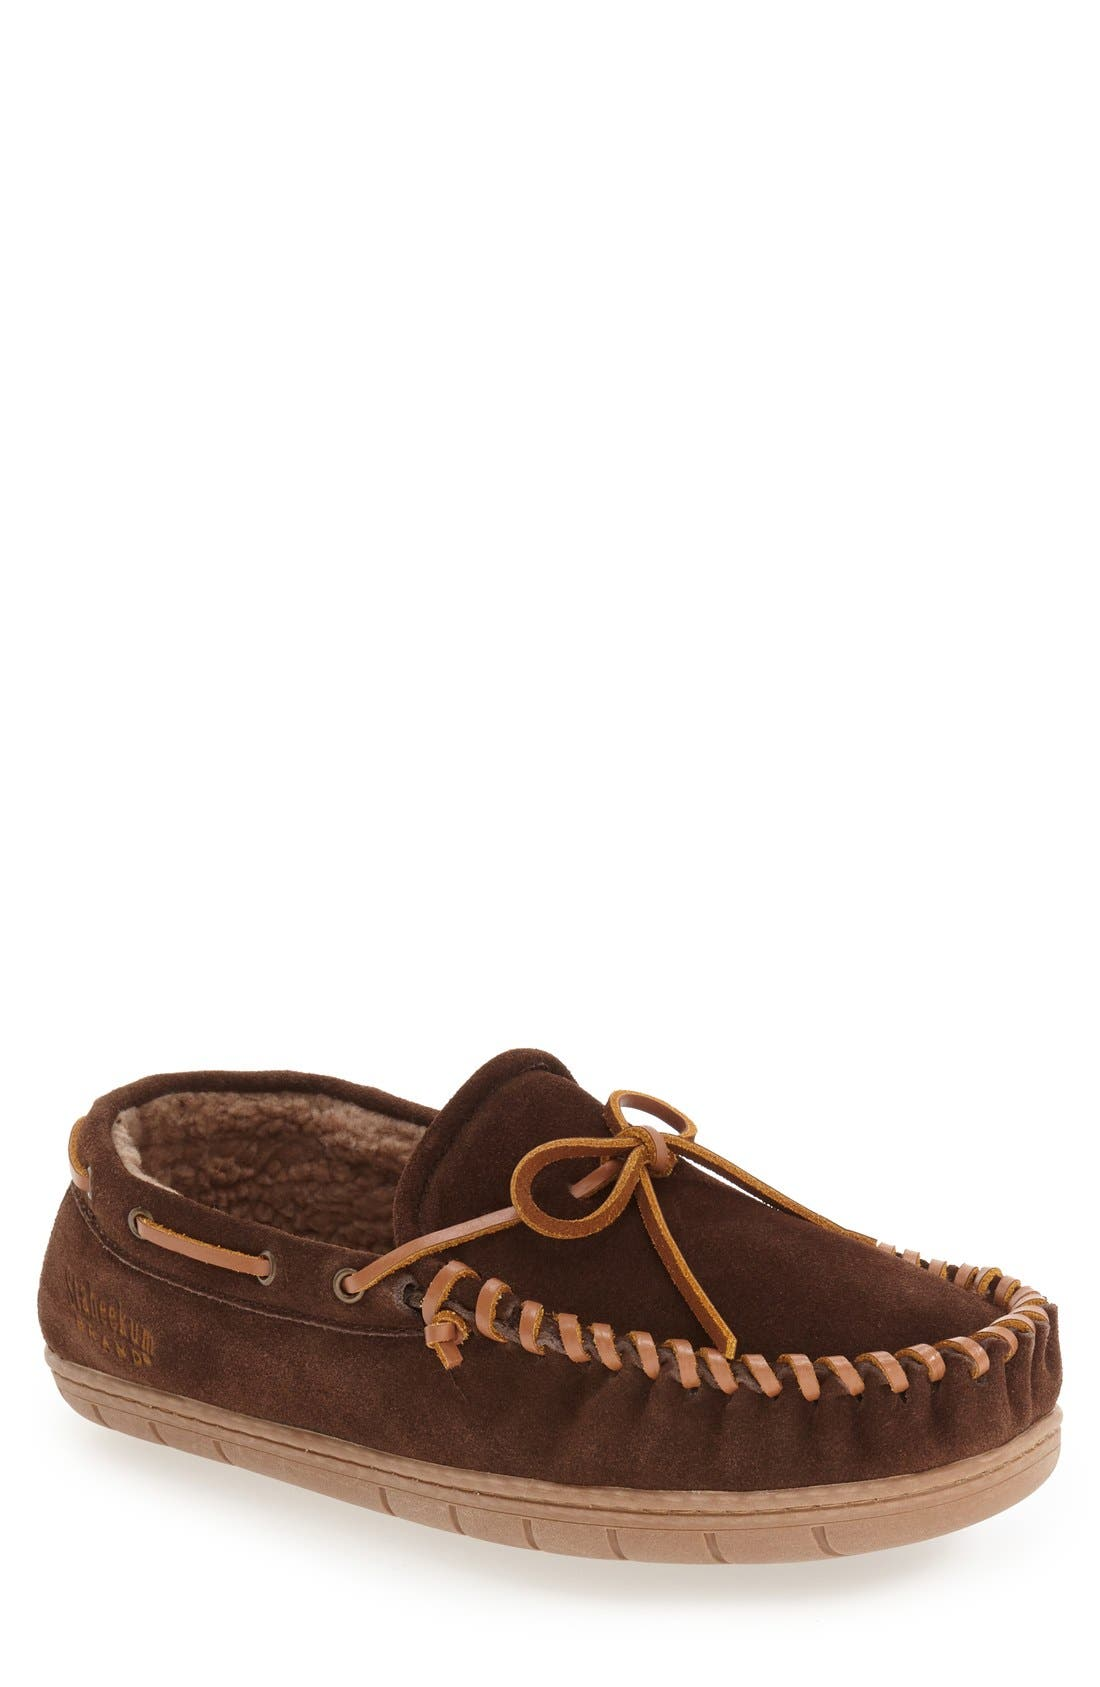 'Courier' Moccasin Slipper,                         Main,                         color, Chocolate Suede